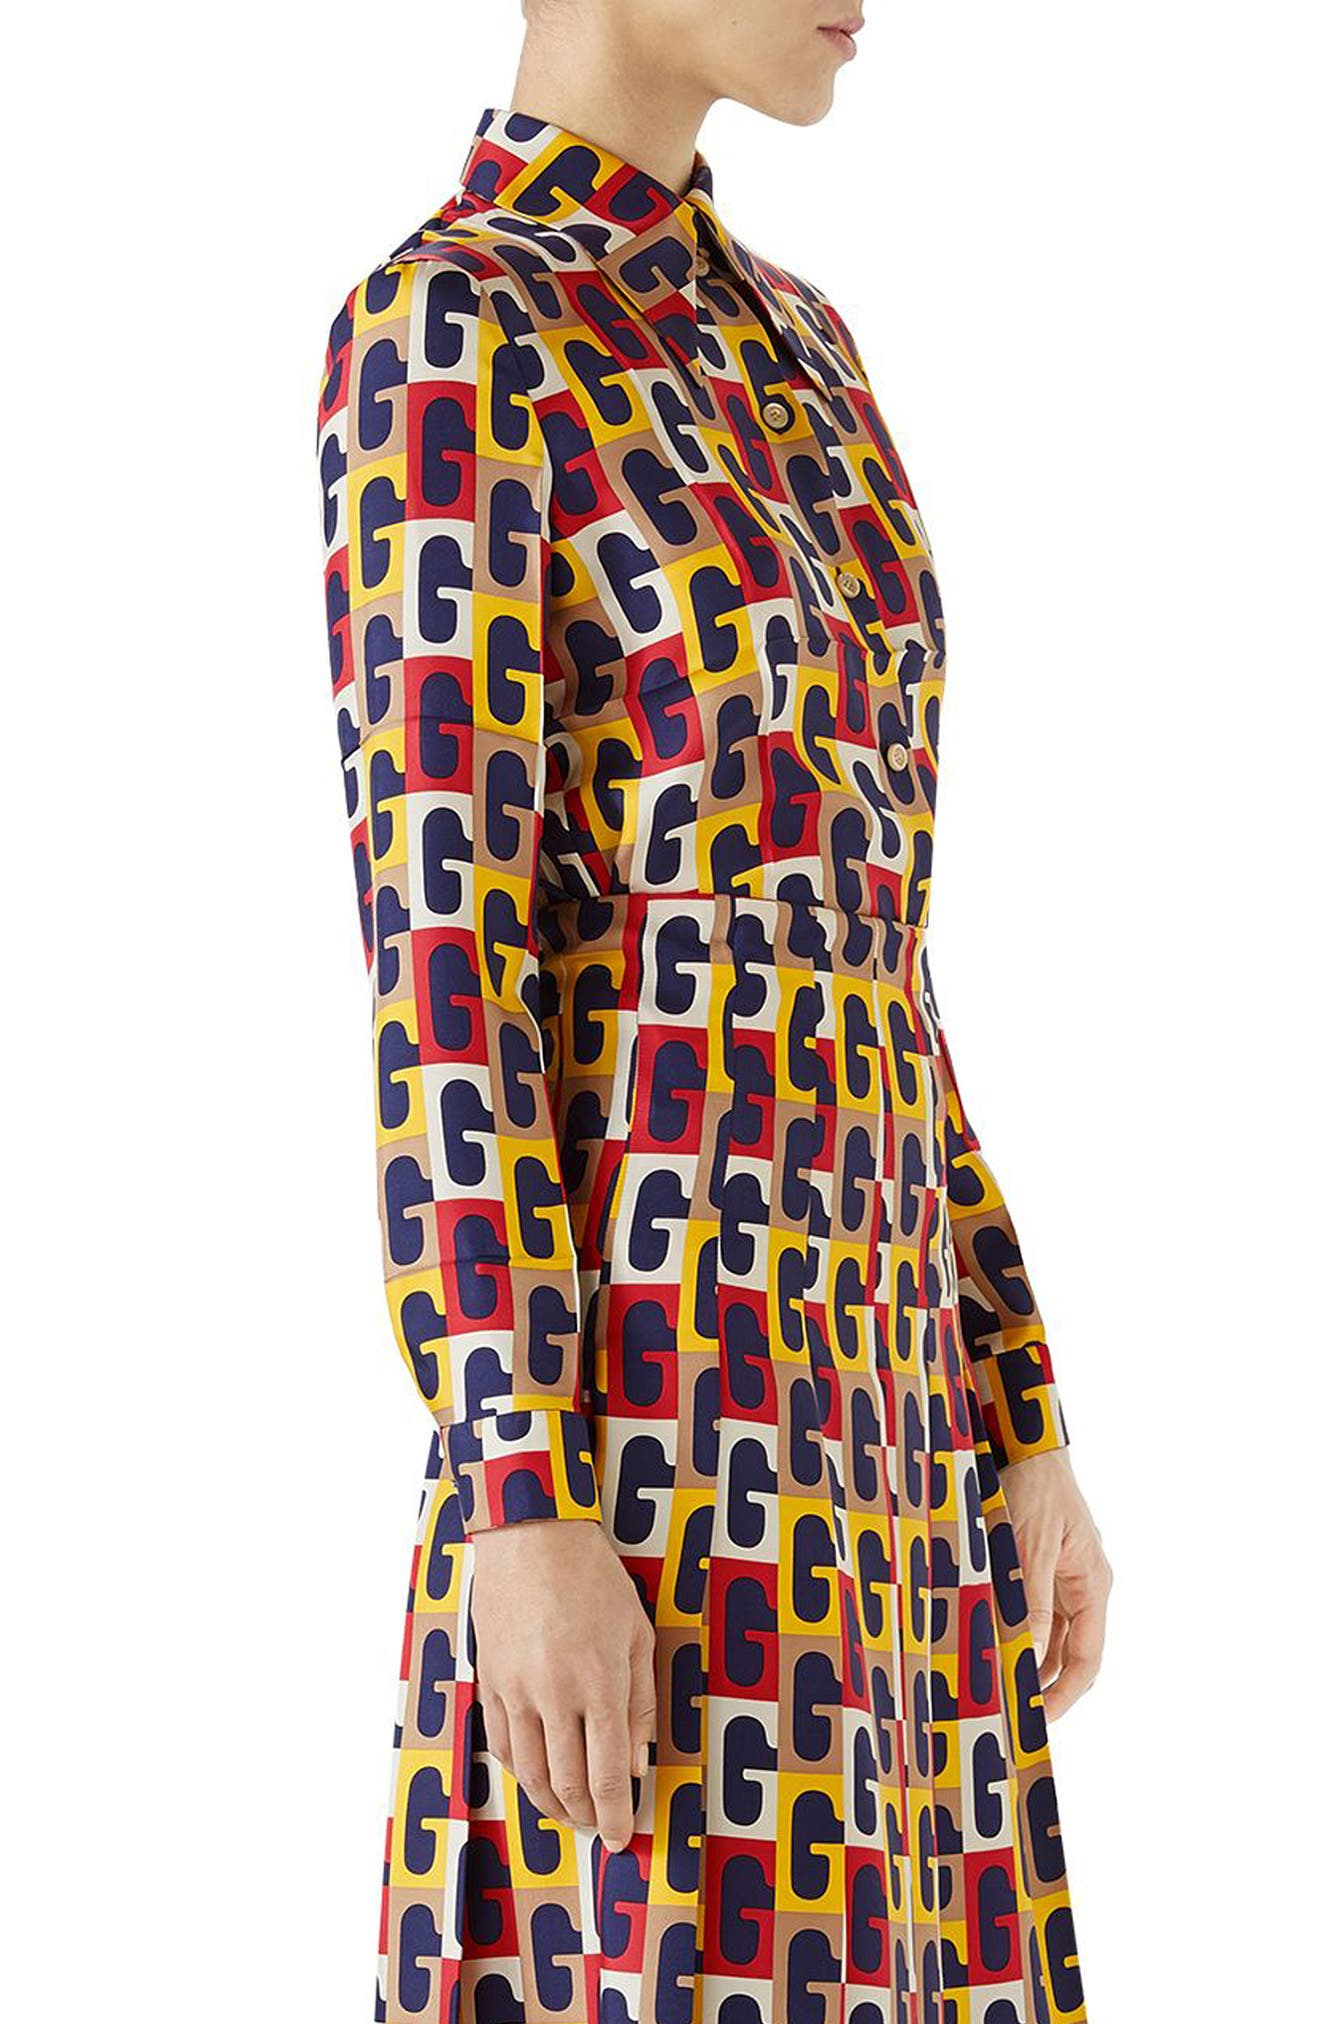 G-Sequence Print Silk Shirt,                             Alternate thumbnail 3, color,                             Ivory/ Yellow/ Red Print